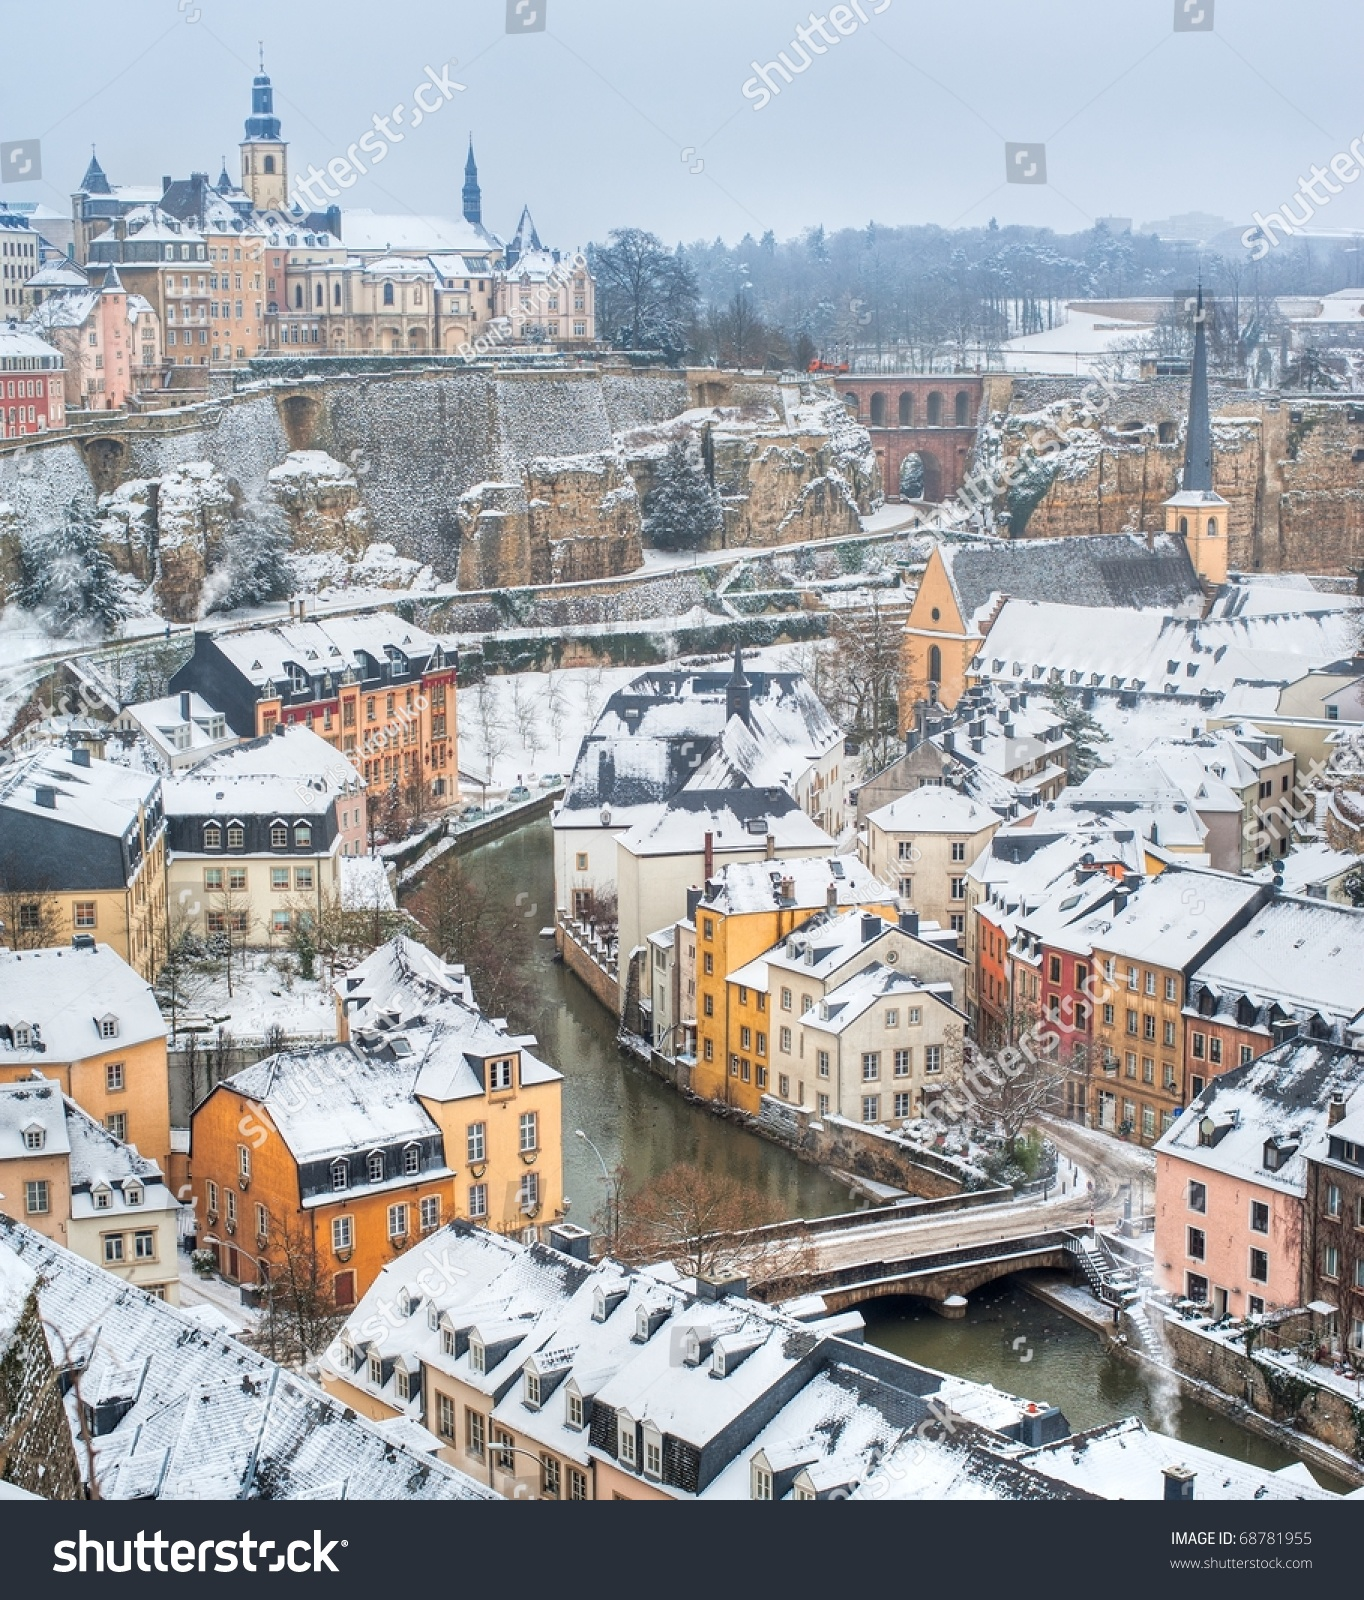 Luxembourg City Tour: Luxembourg Old Town Panorama On A White Winter Day Stock